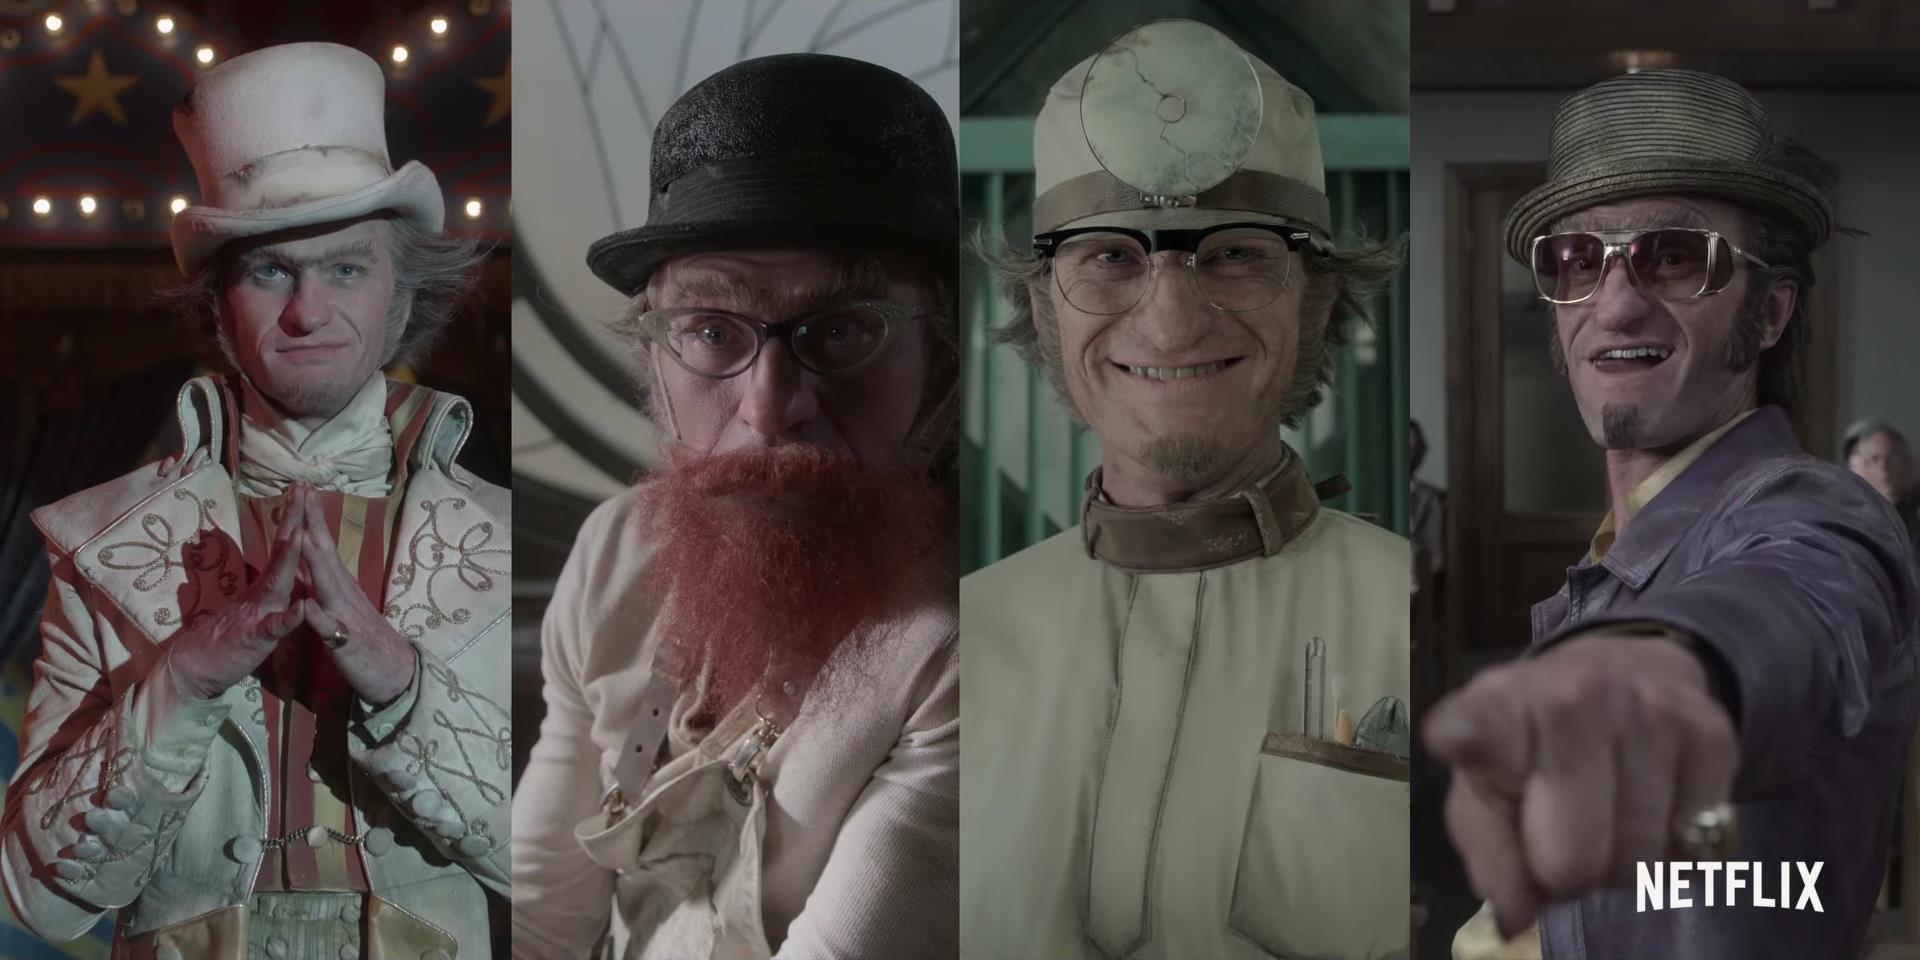 'A Series of Unfortunate Events' Season 2 Trailer: Count Olaf is Back